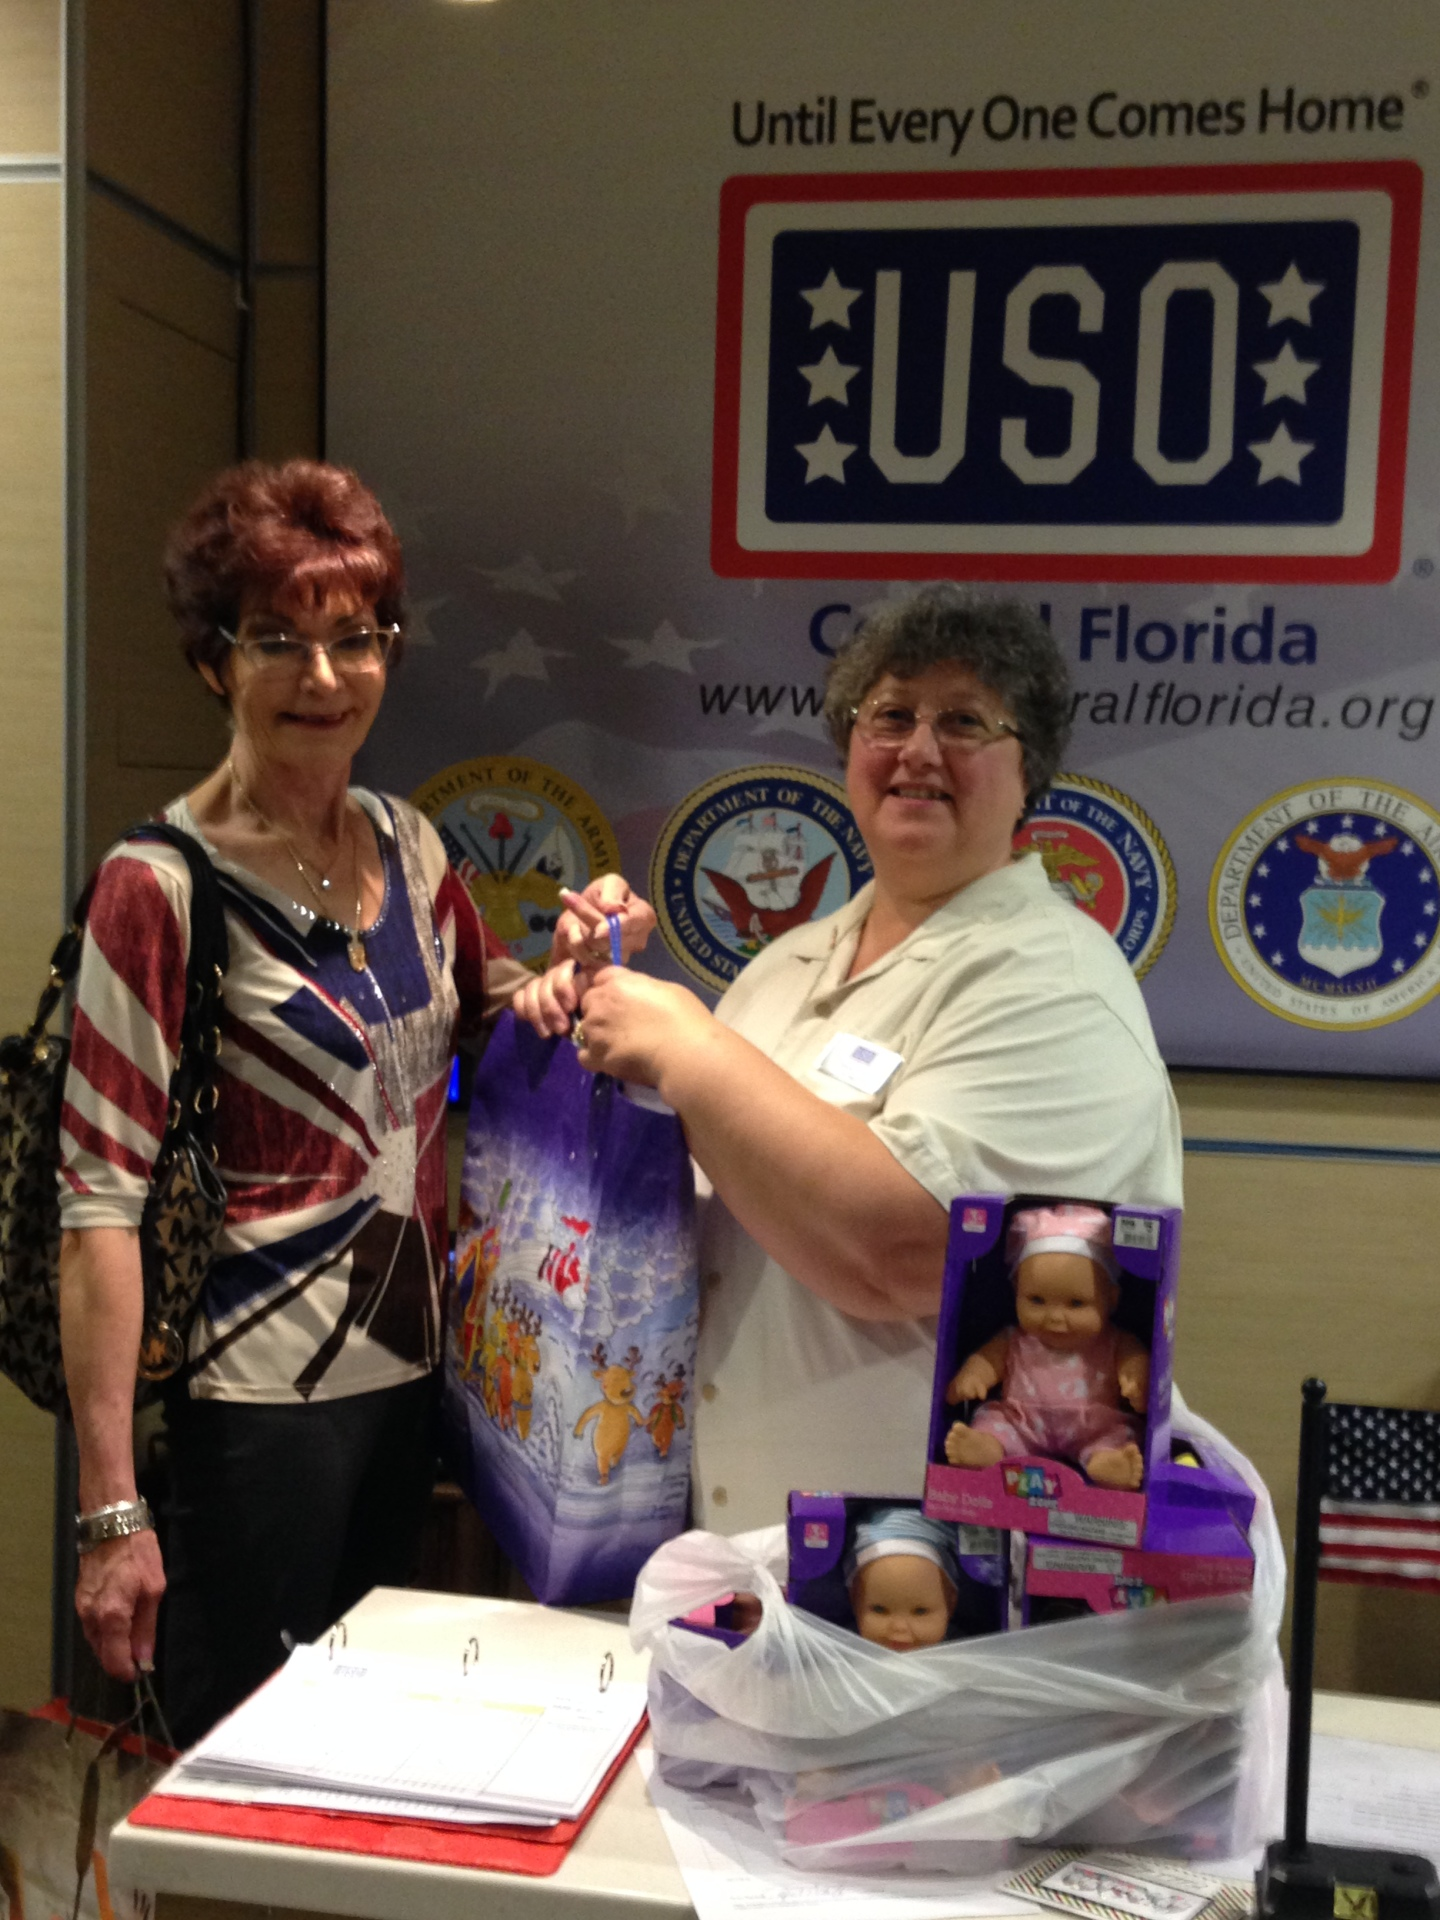 Our donation to the USO!